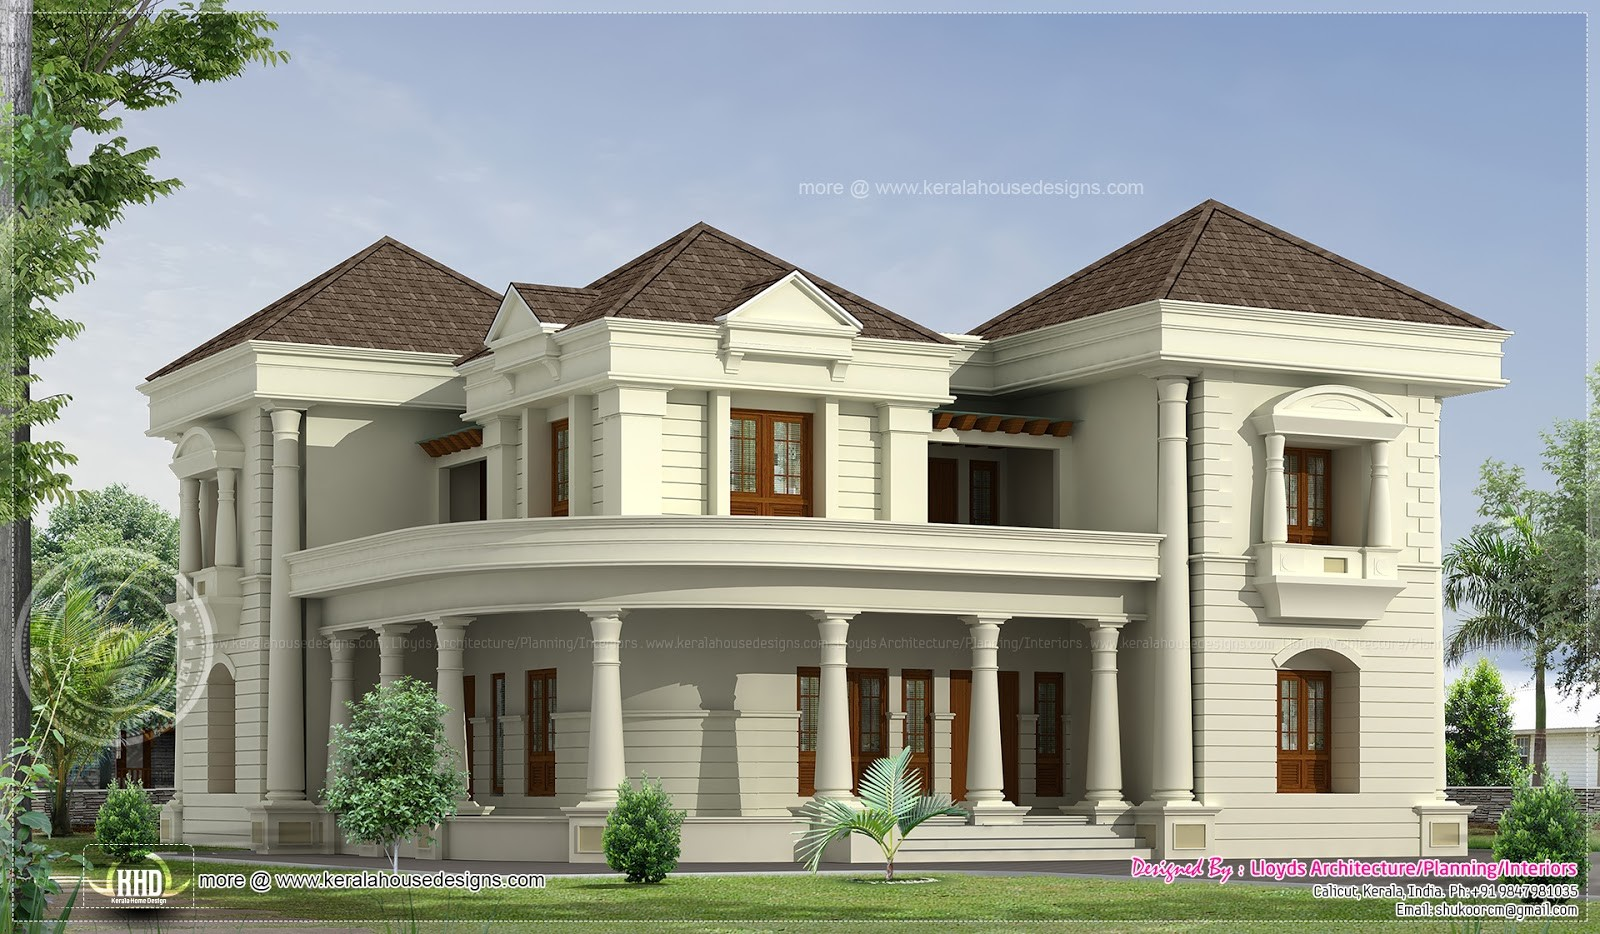 Bedroom Luxurious Bungalow Floor Plan